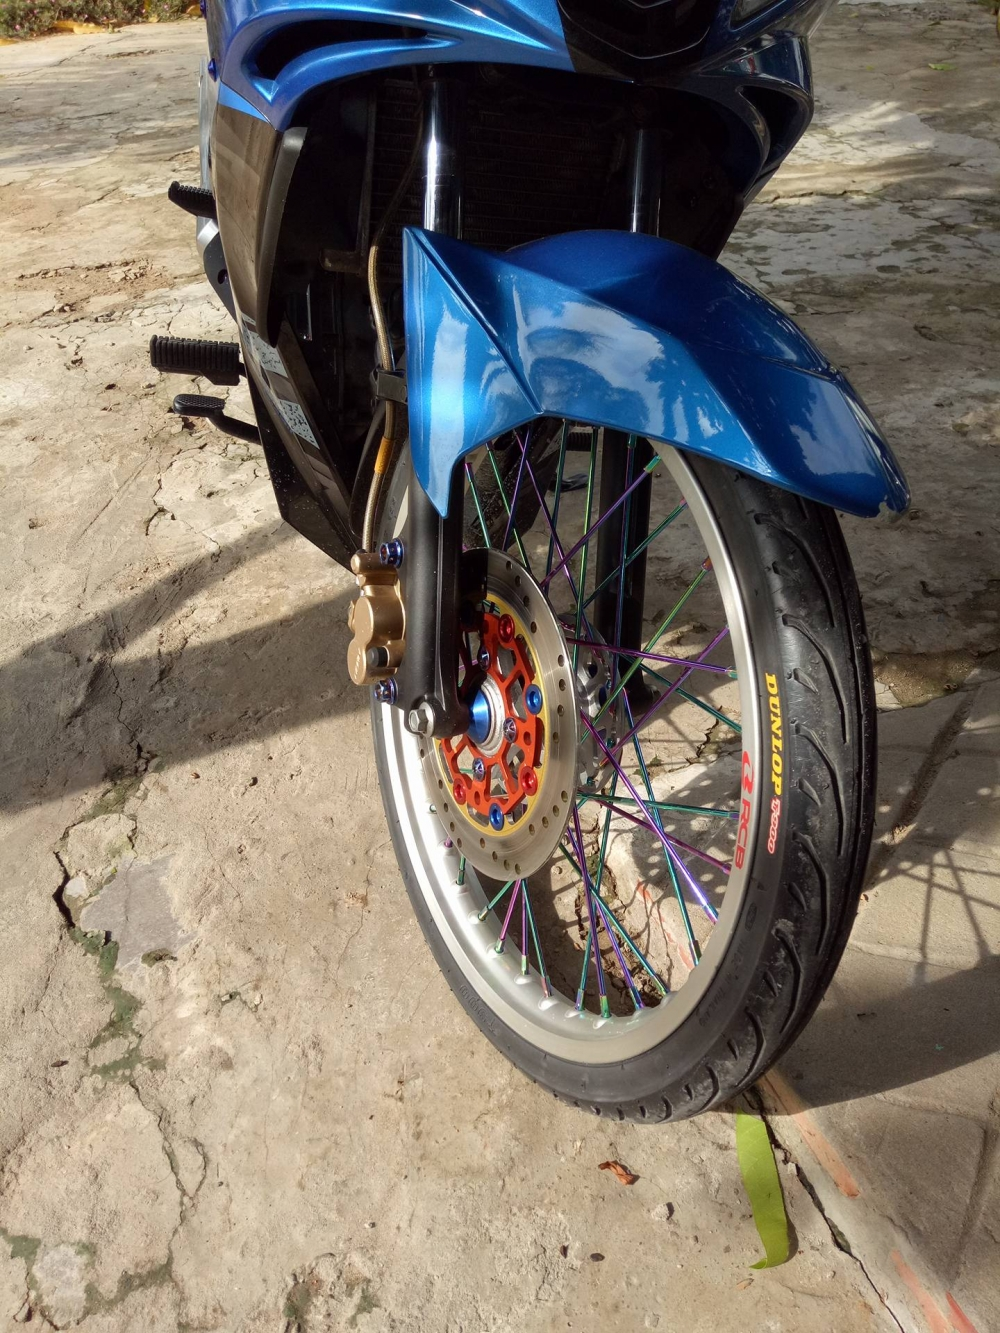 Exciter 135 may Thai don nhe - 2